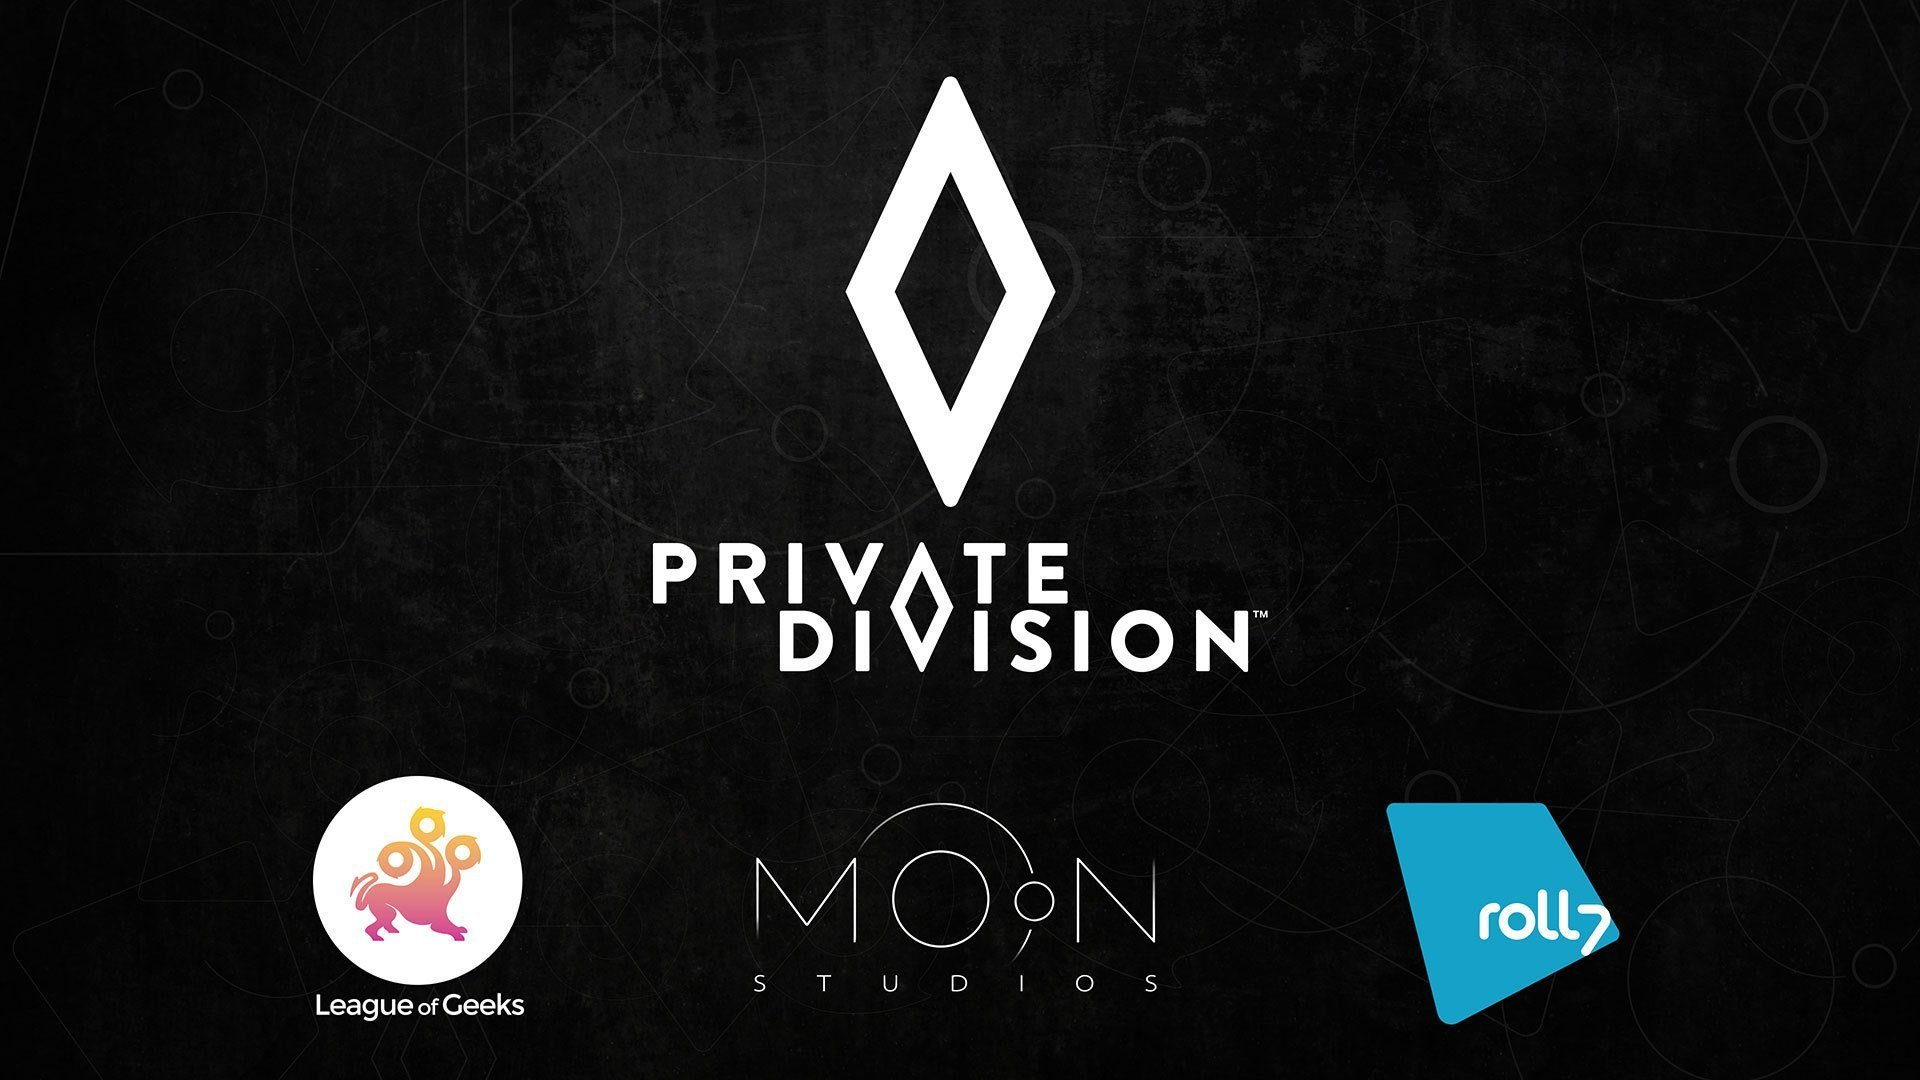 Private Division and Moon Studios